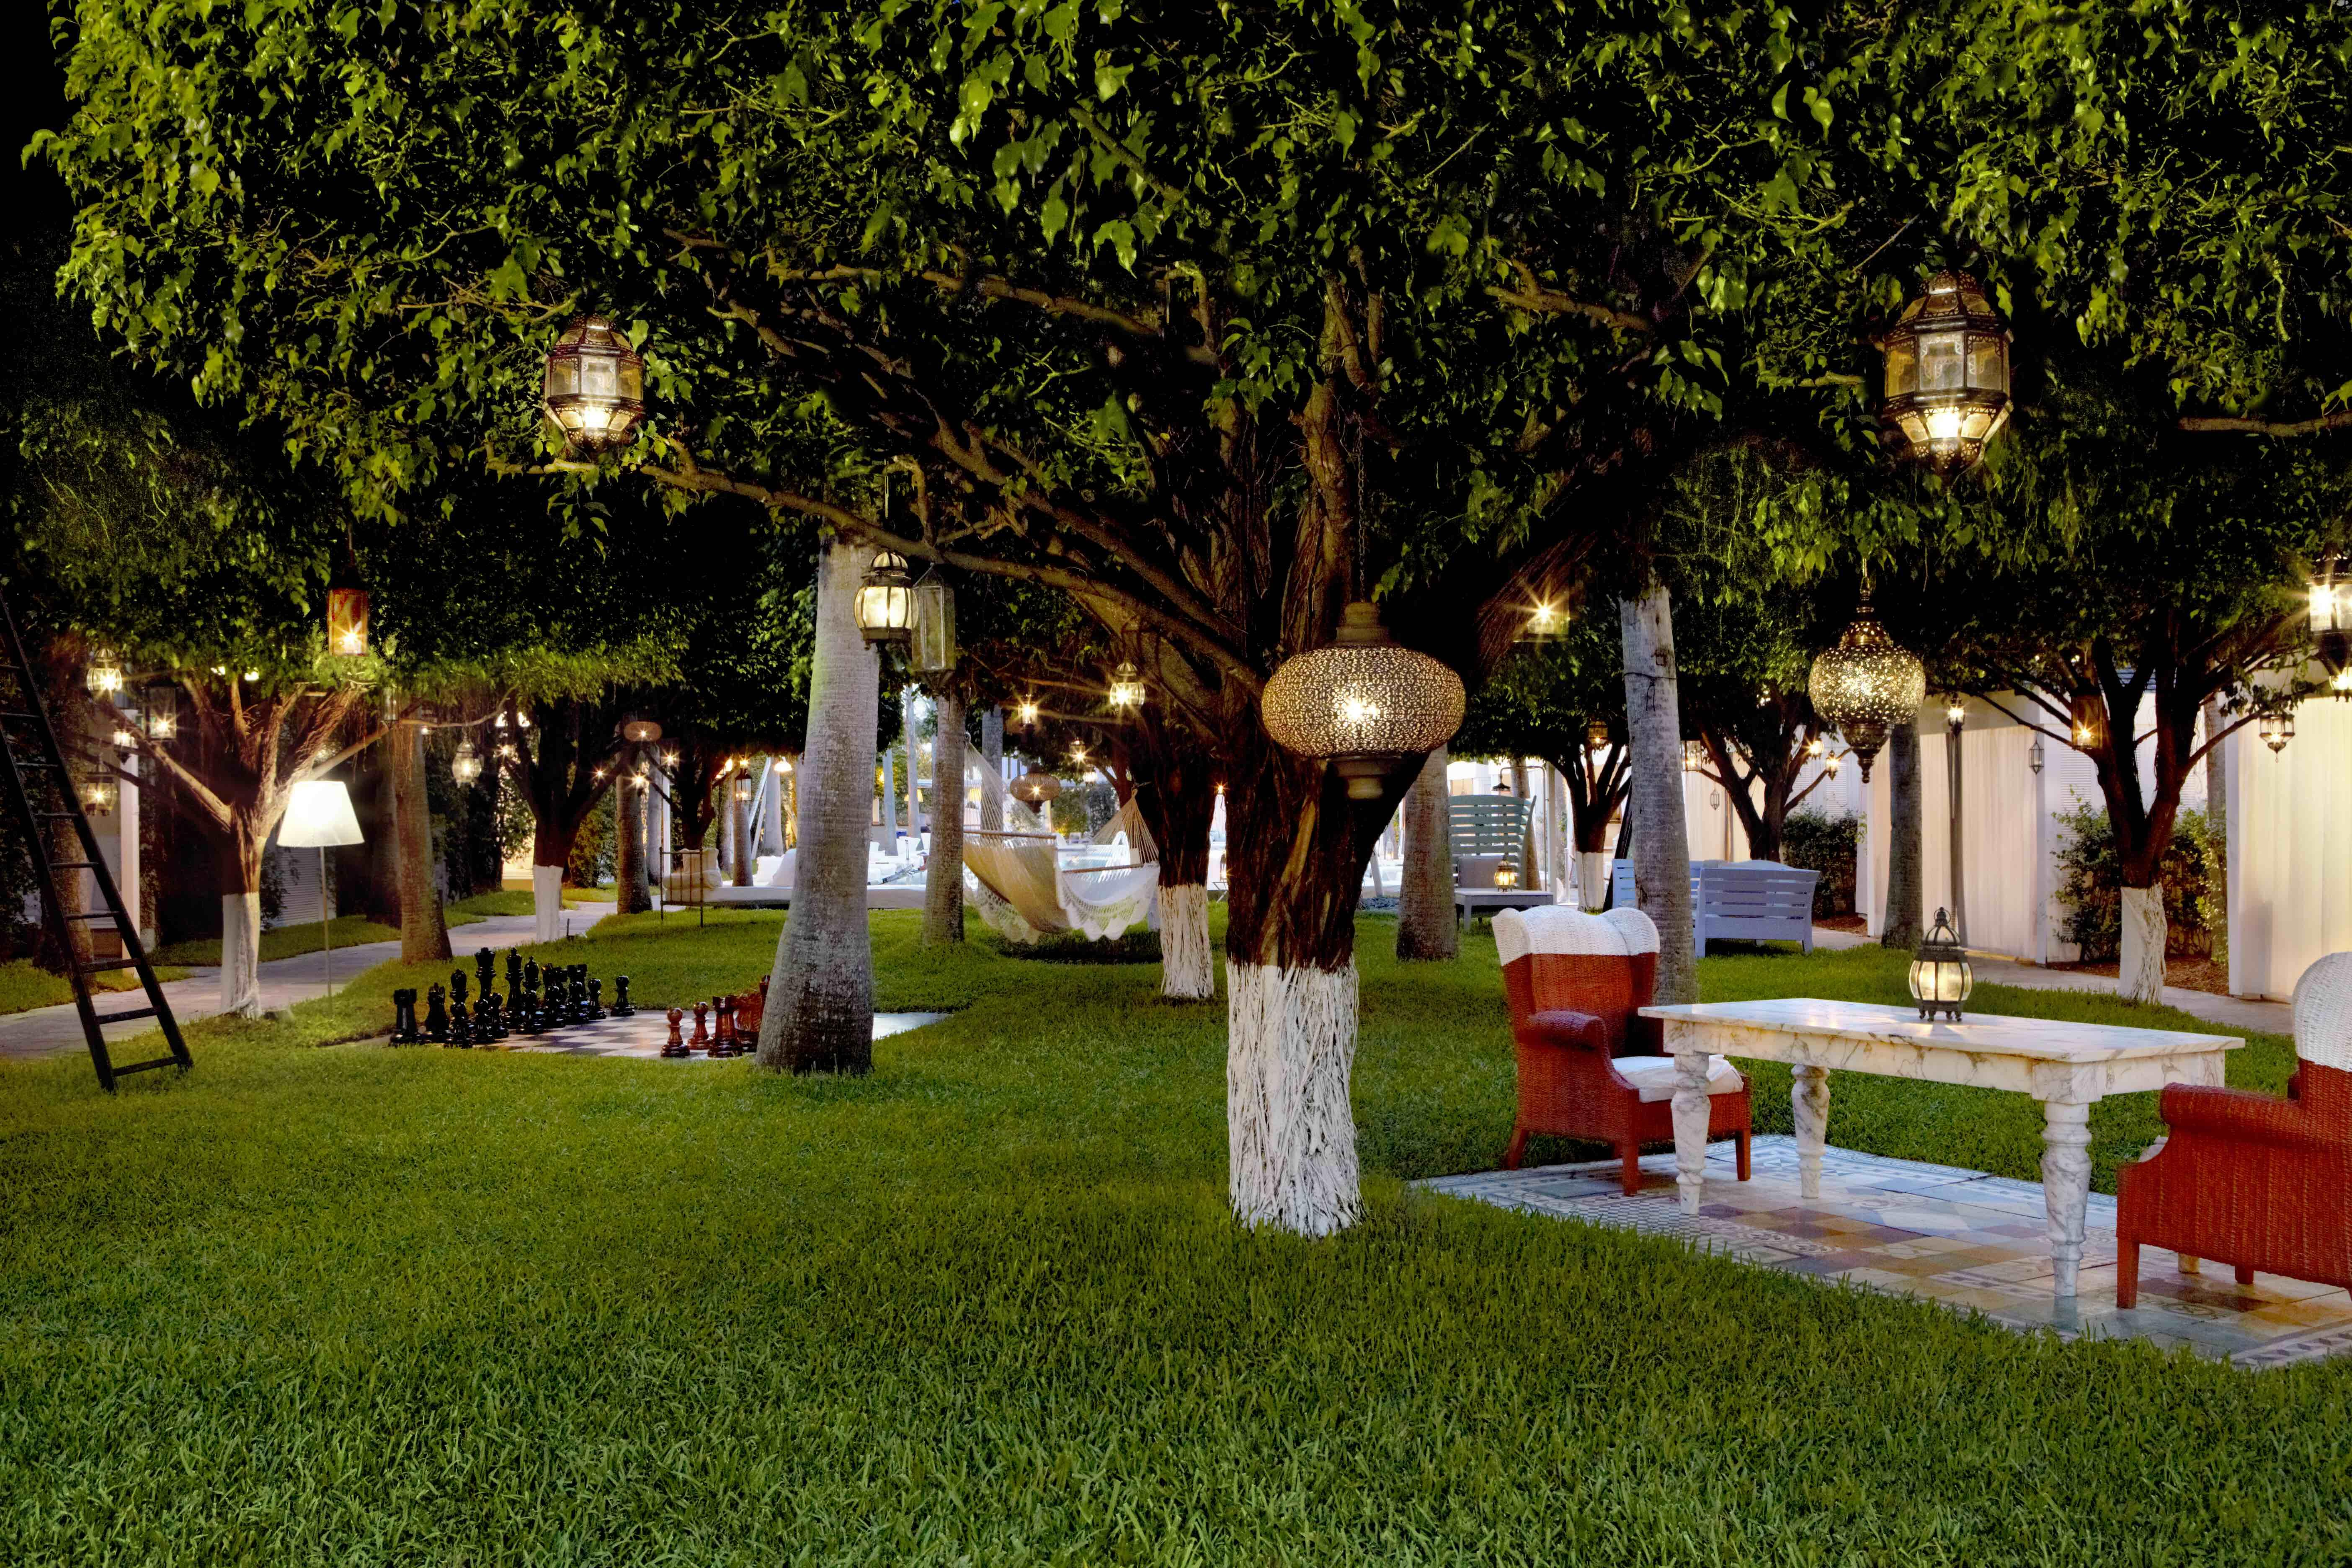 A green tree-filled outdoor lounge space with hanging lights